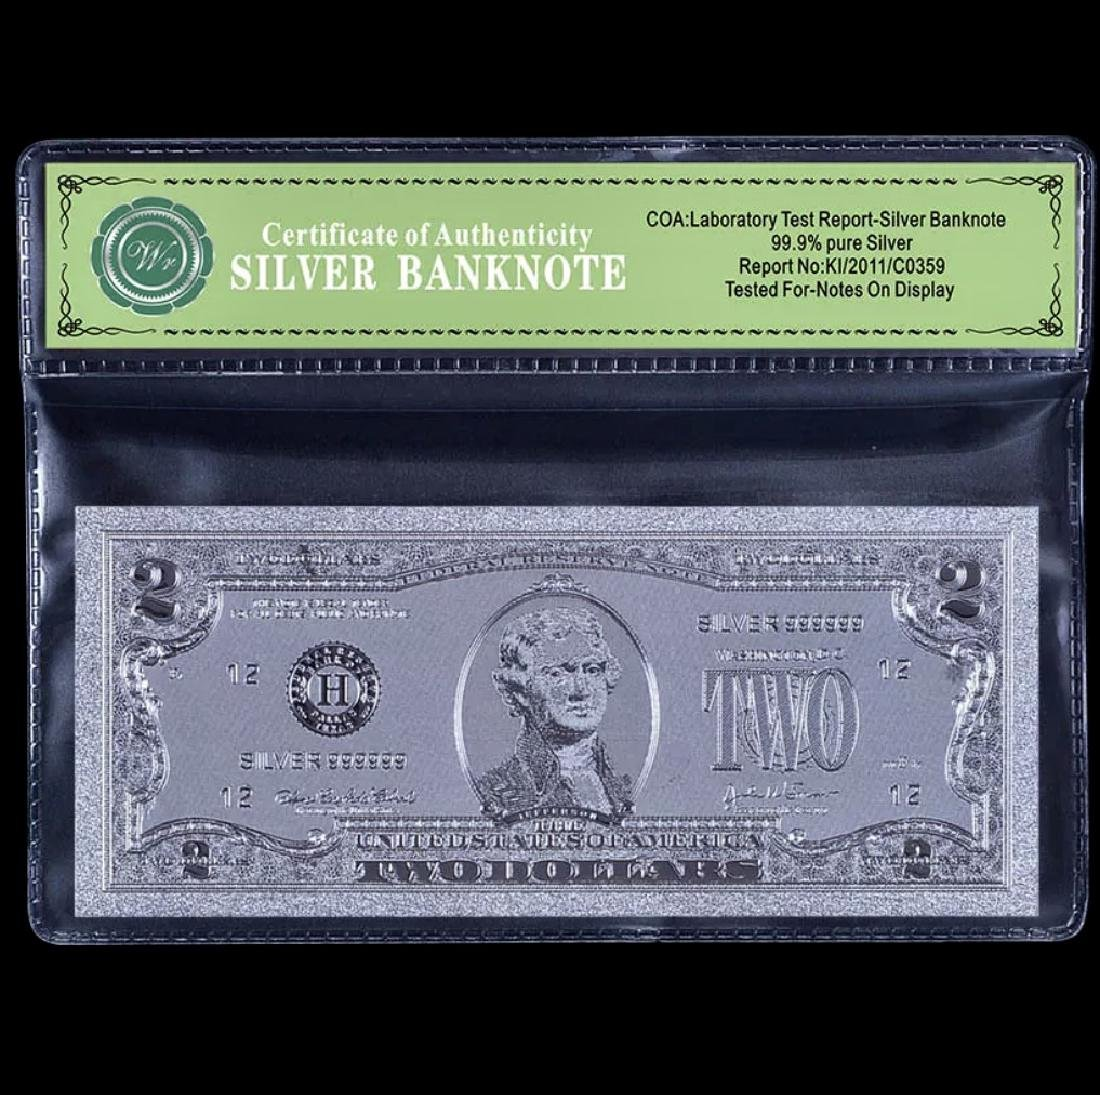 Uncirculated 99.9 % Silver Banknote $2 Bill